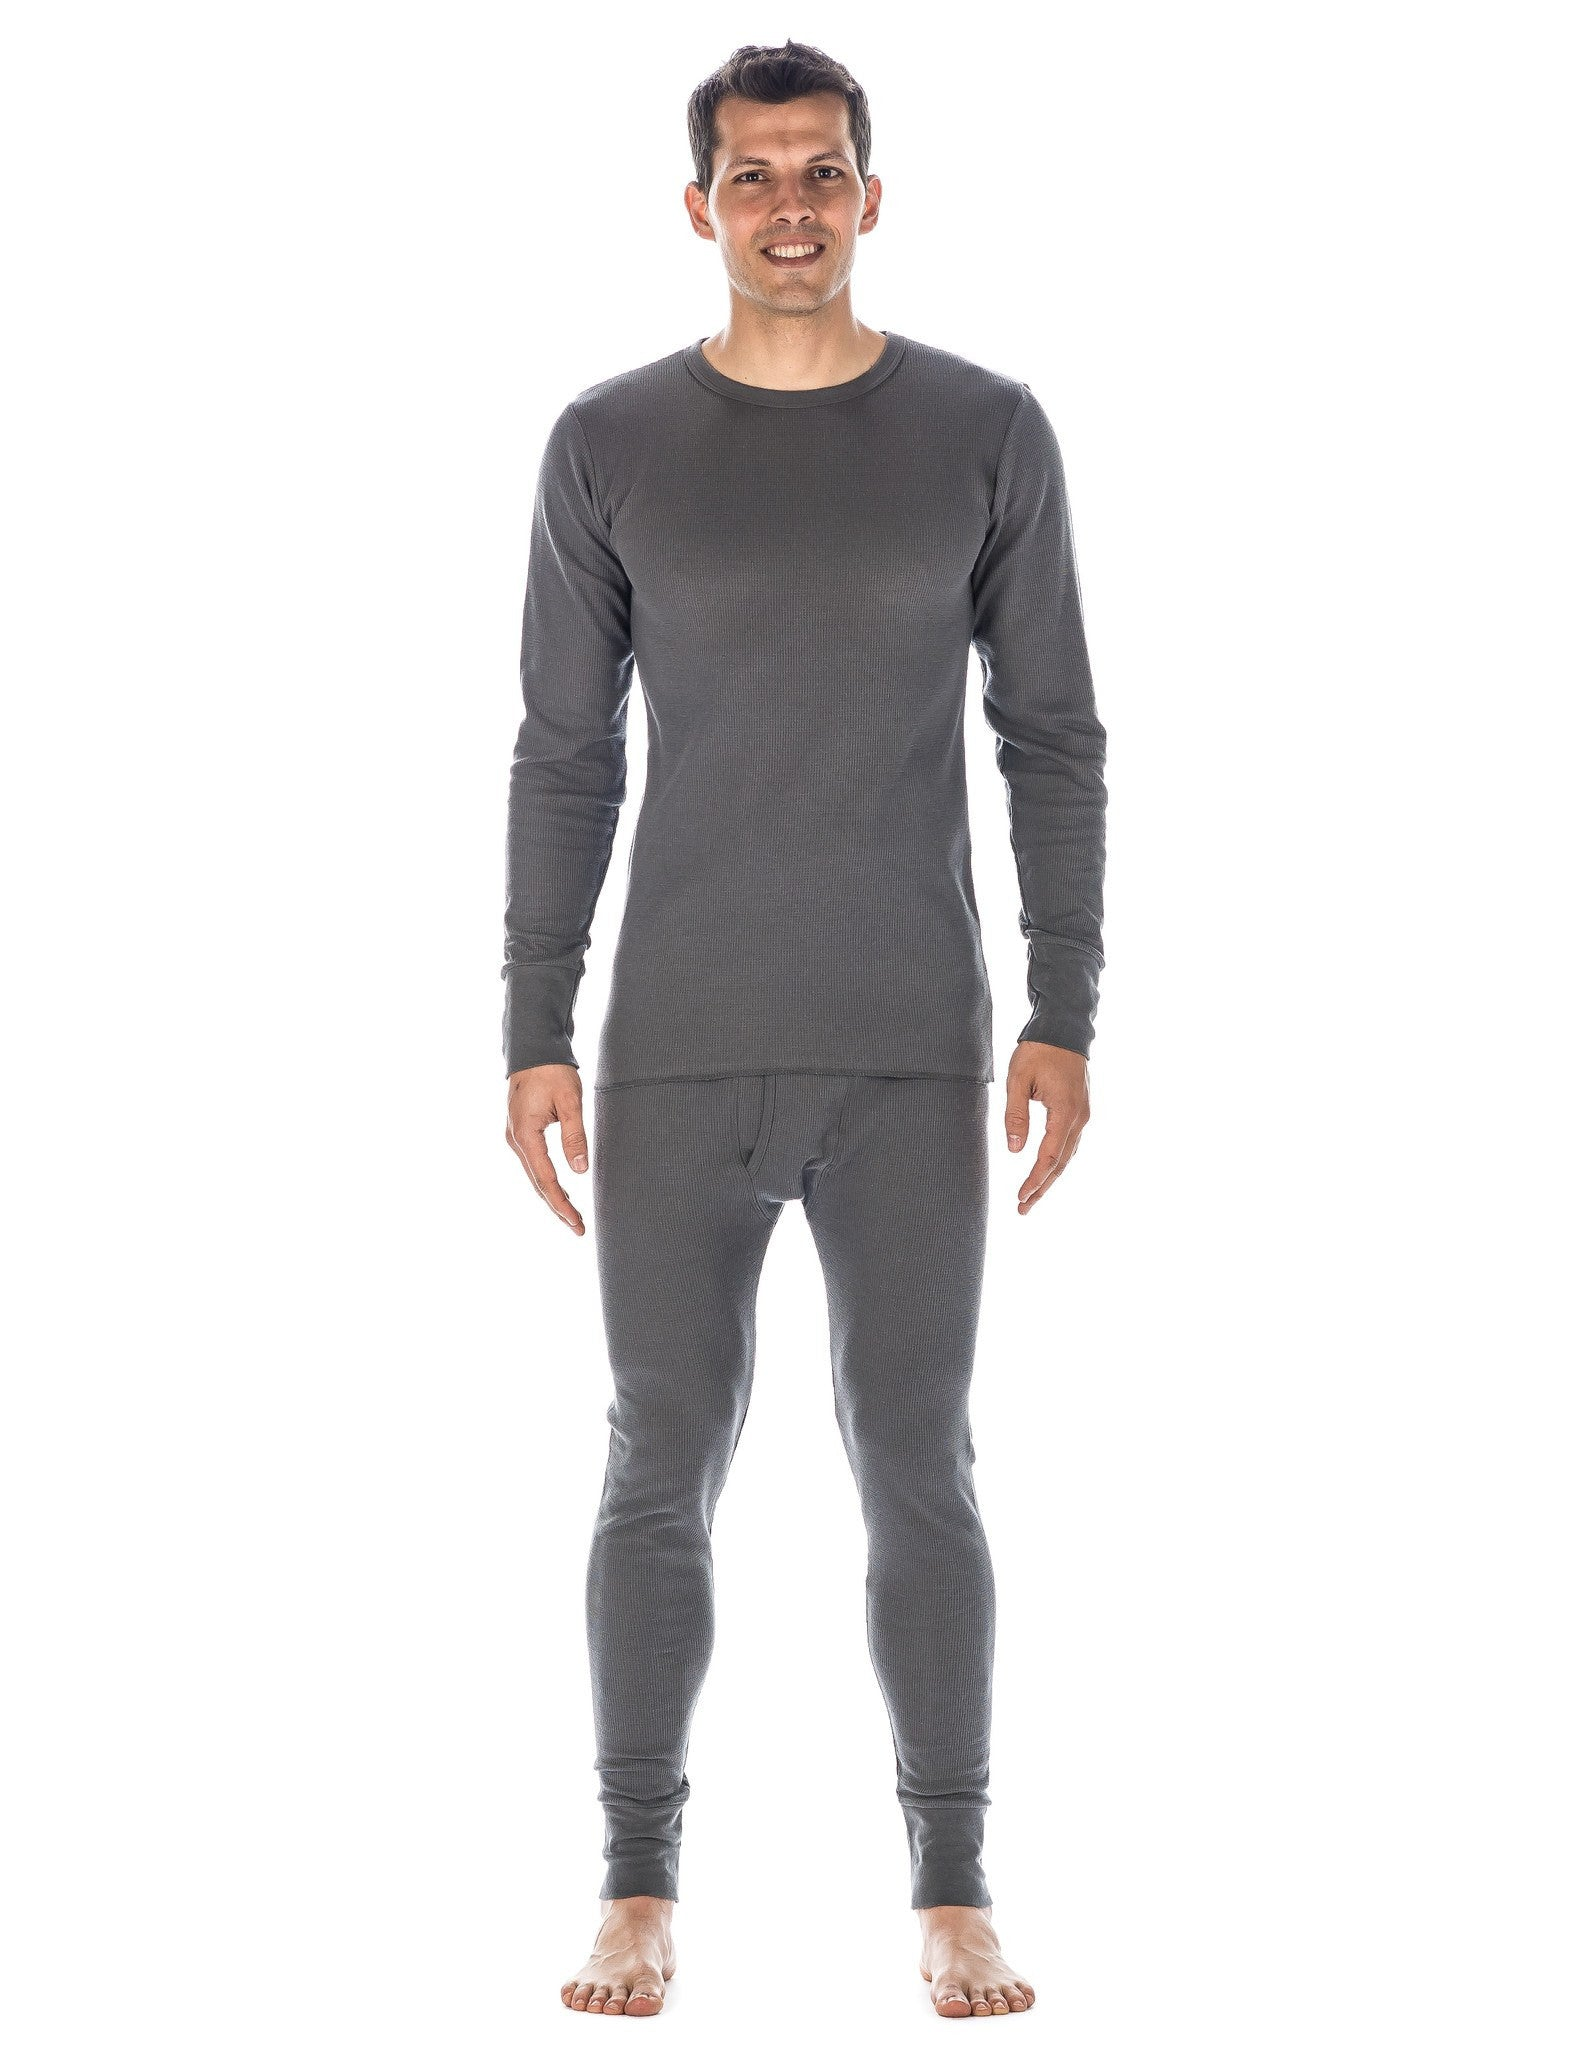 Men's Classic Waffle Knit Thermal Top and Bottom Set